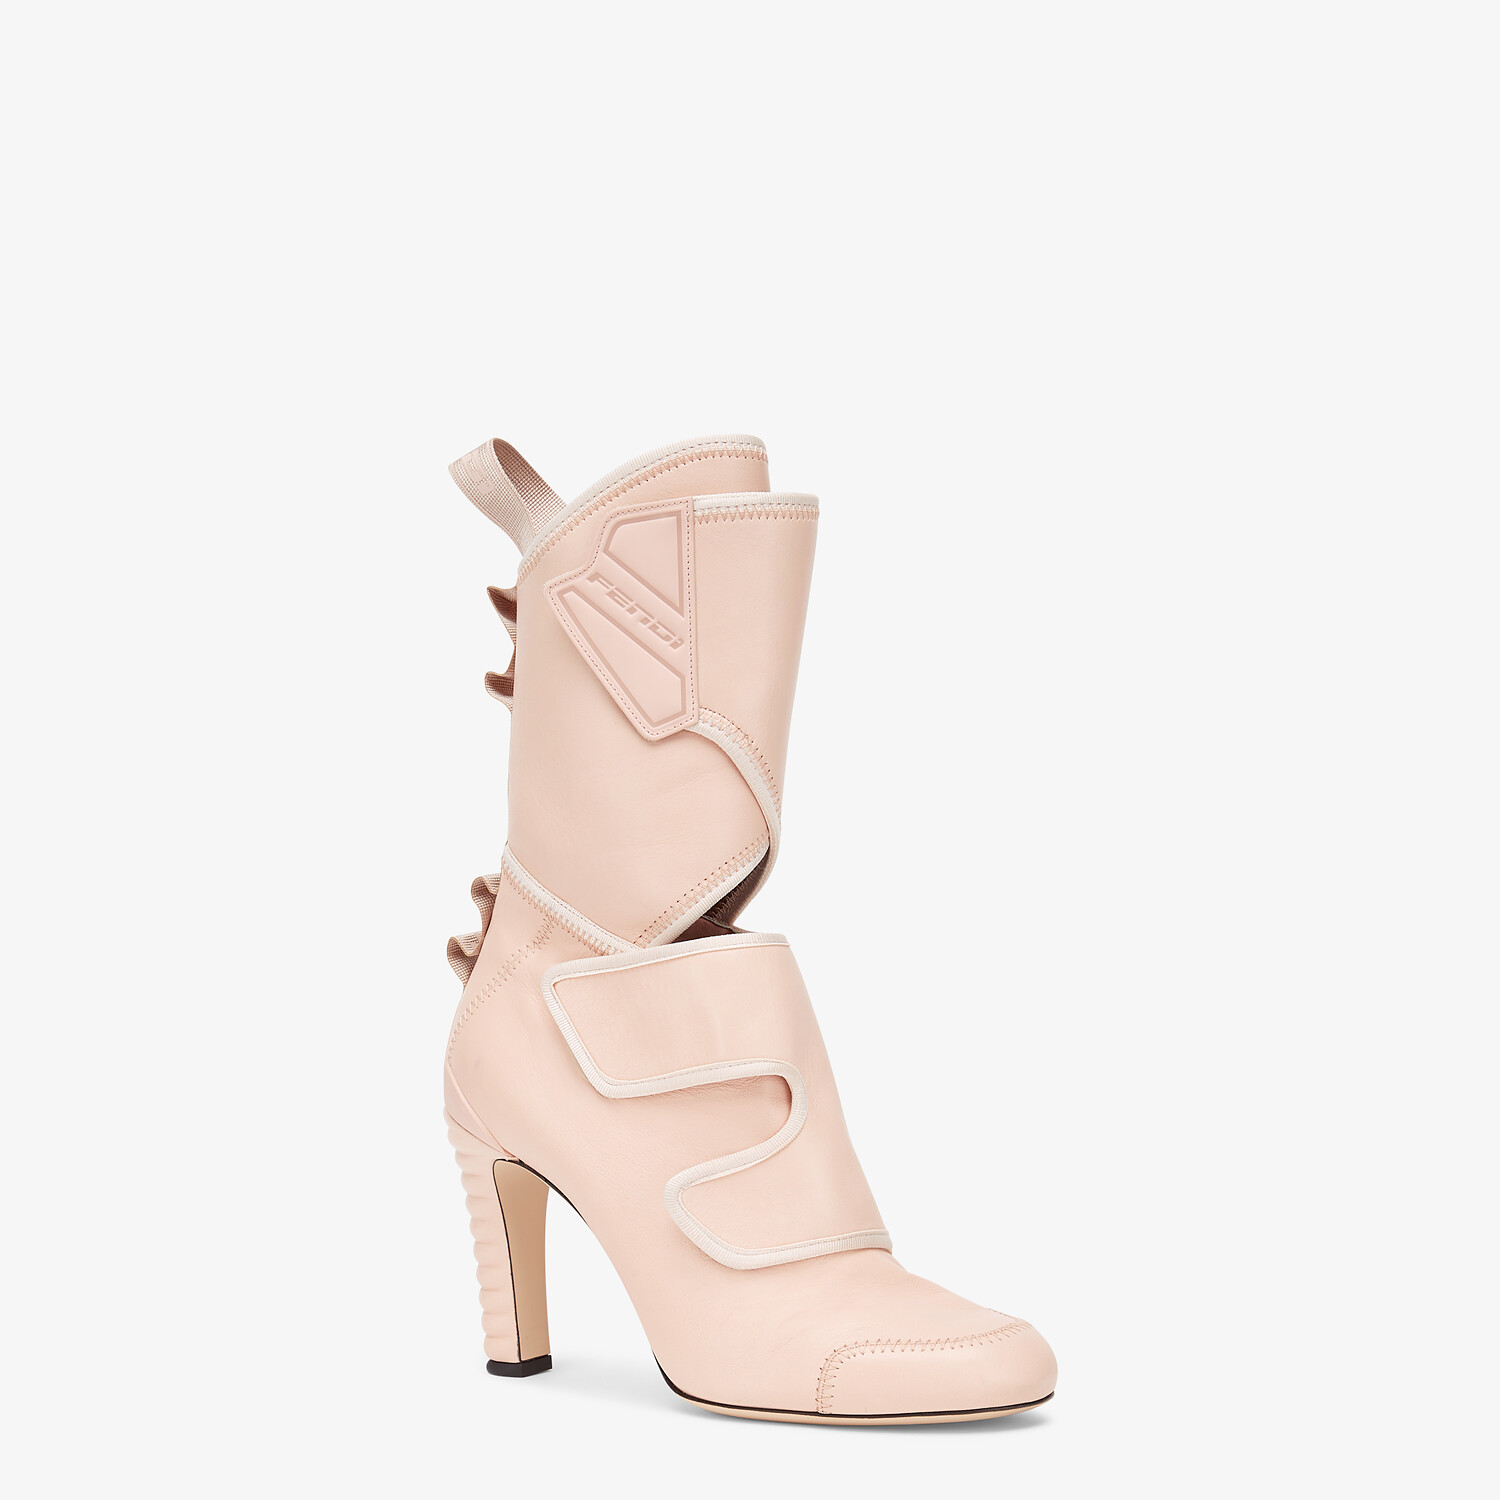 FENDI ANKLE BOOTS - Pink leather Promenade Booties - view 2 detail